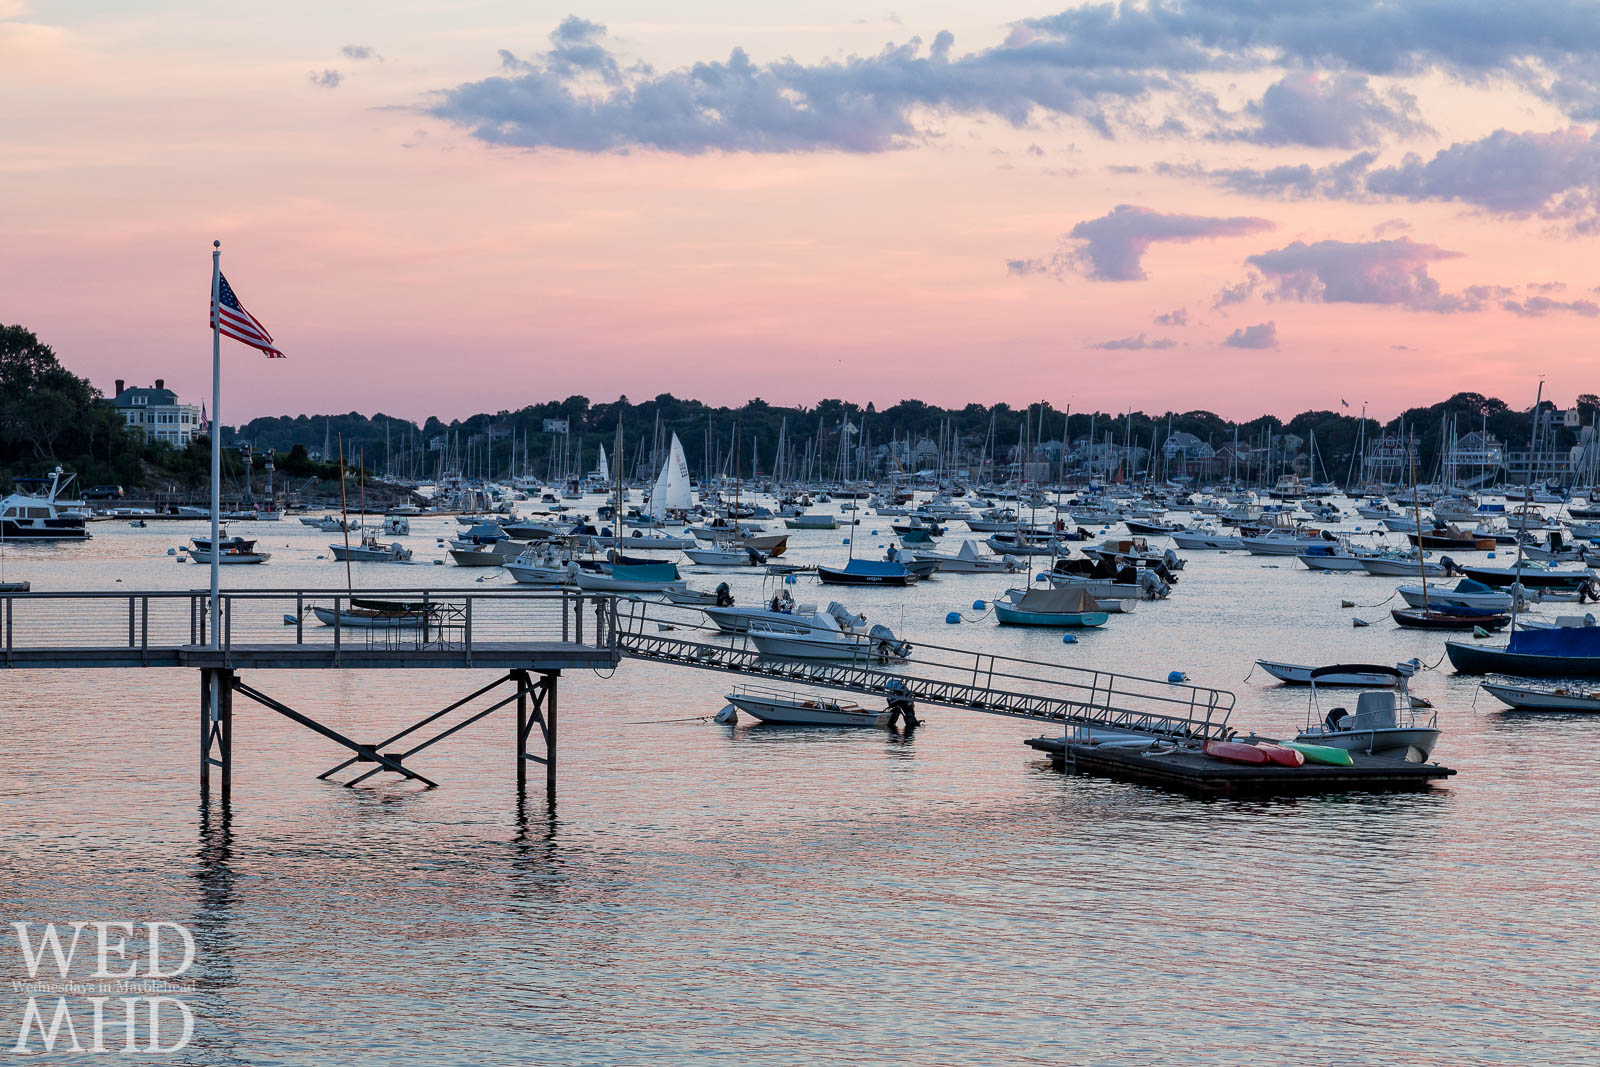 Marblehead Harbor Filled with Boats at Sunset